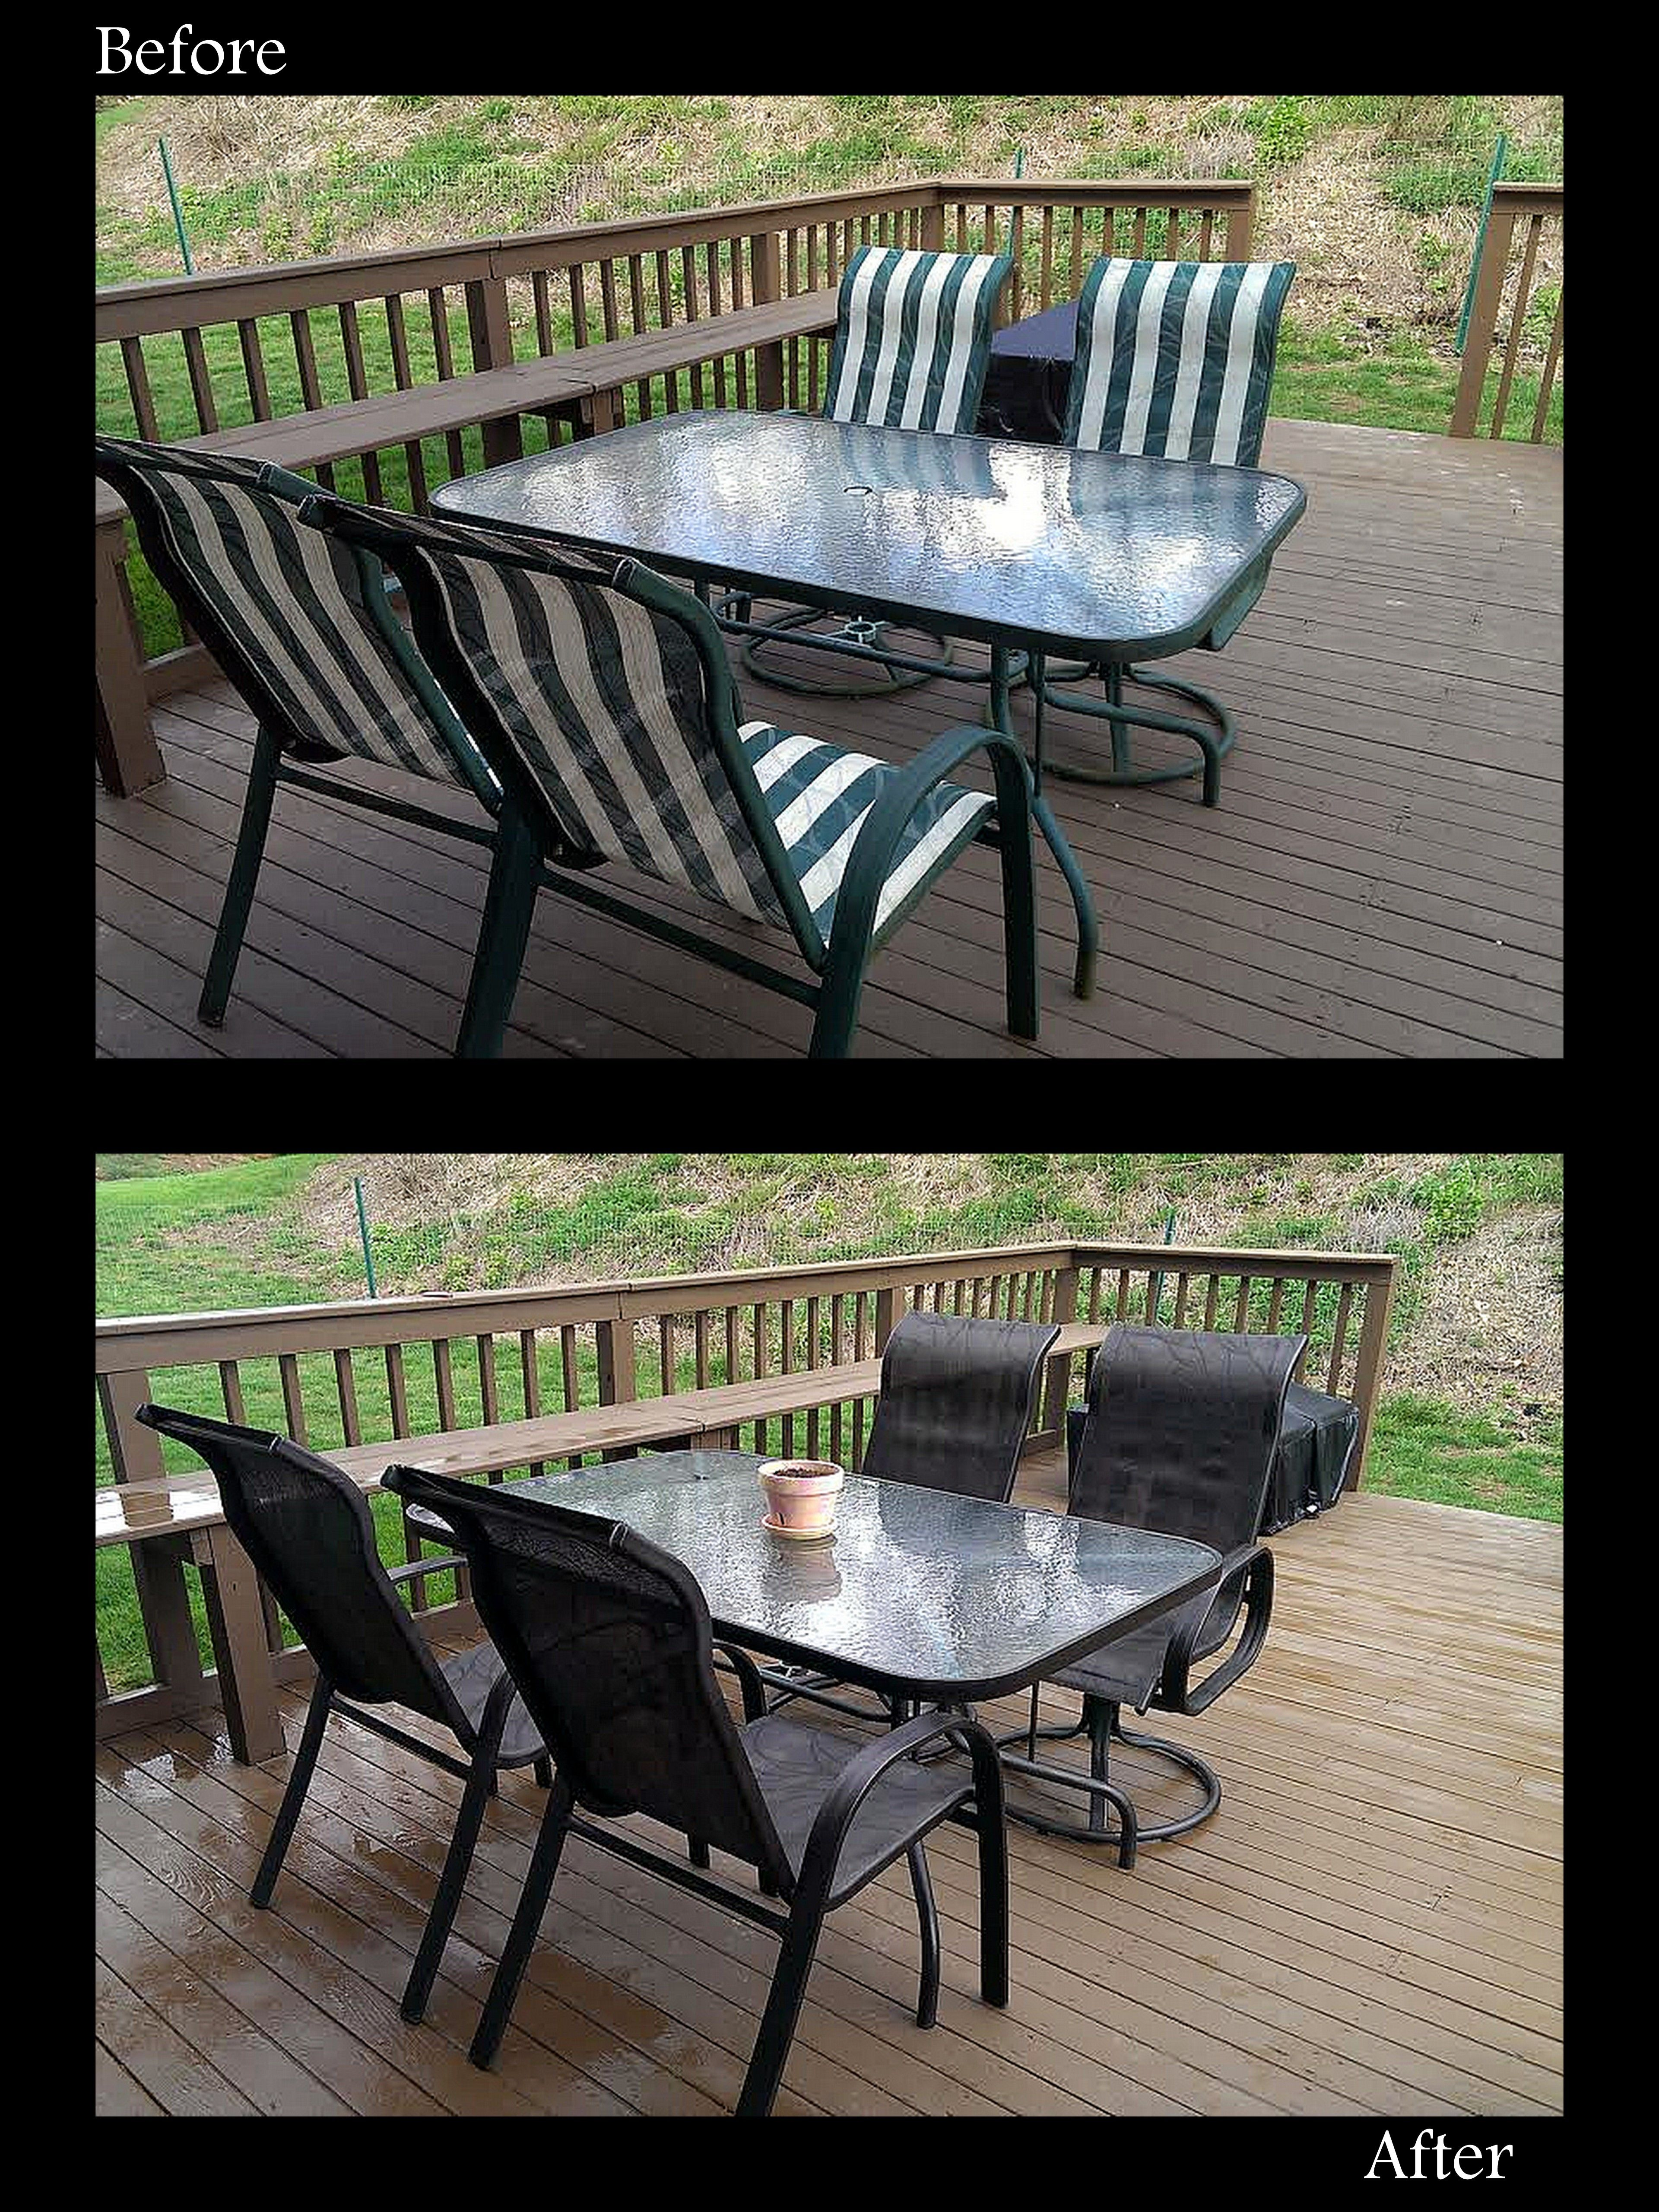 redo sling patio chairs stretchy chair covers your old outdated set using spray paint used